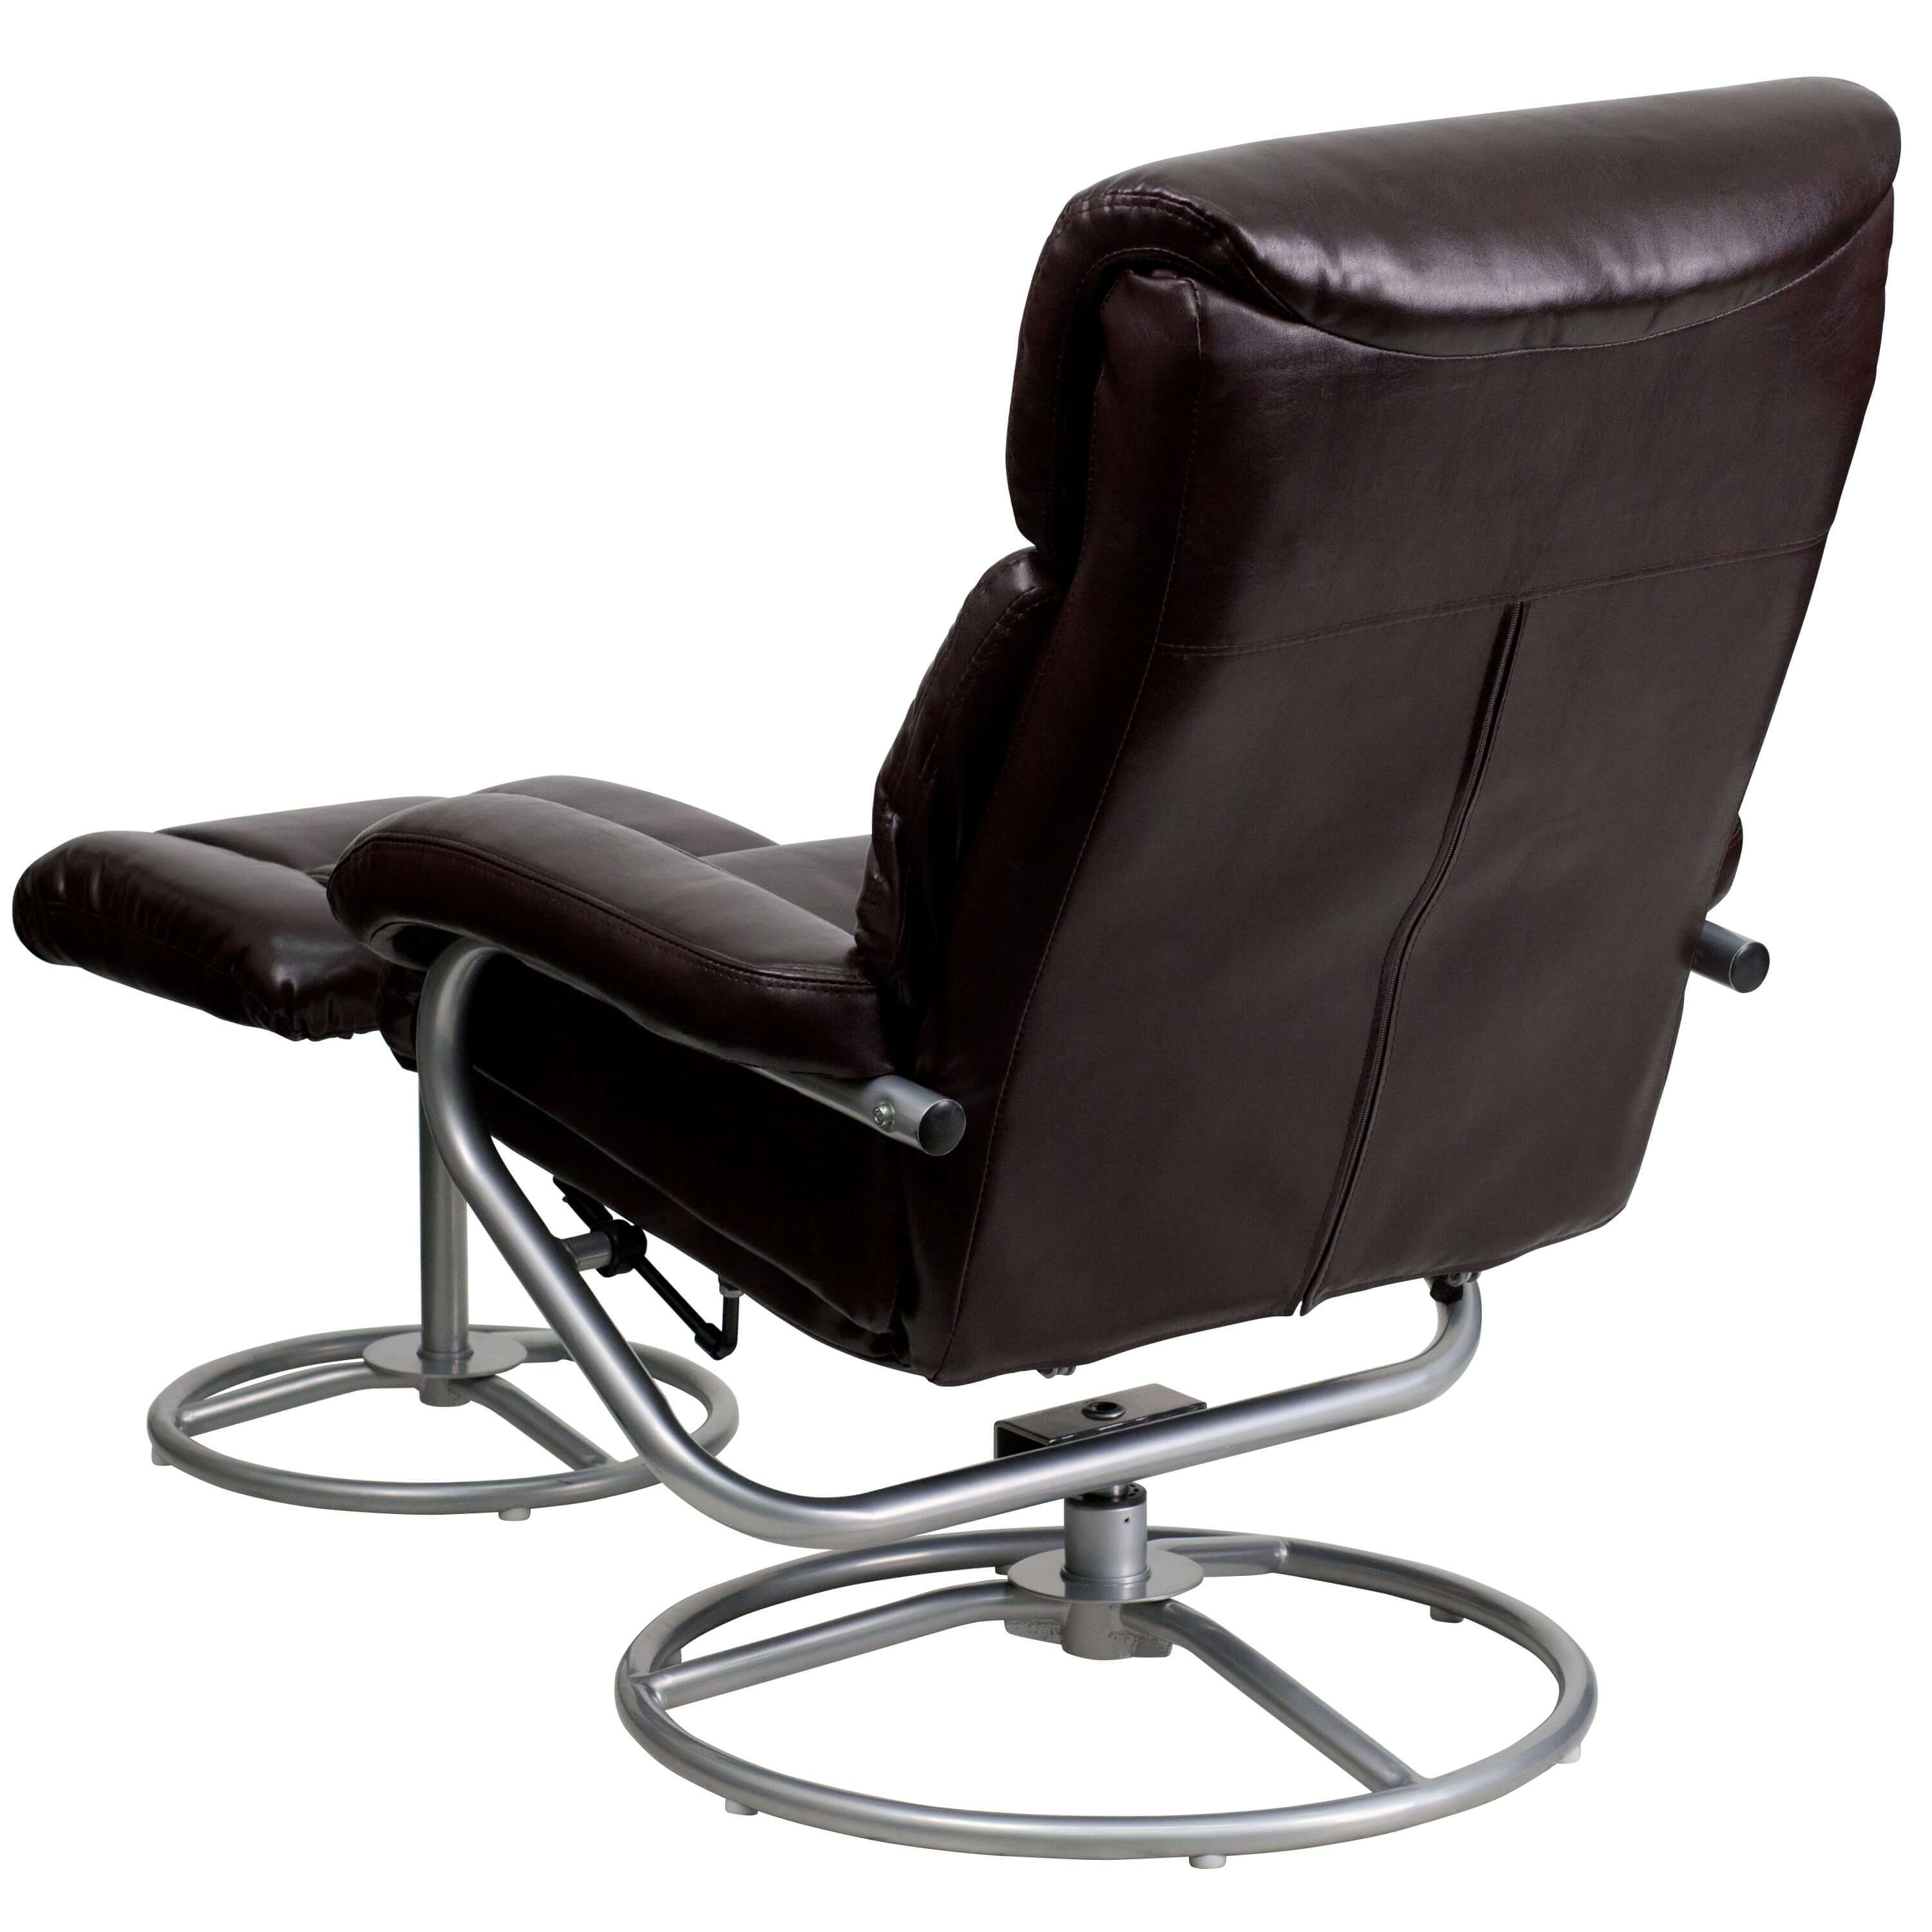 Contemporary leather recliners back view